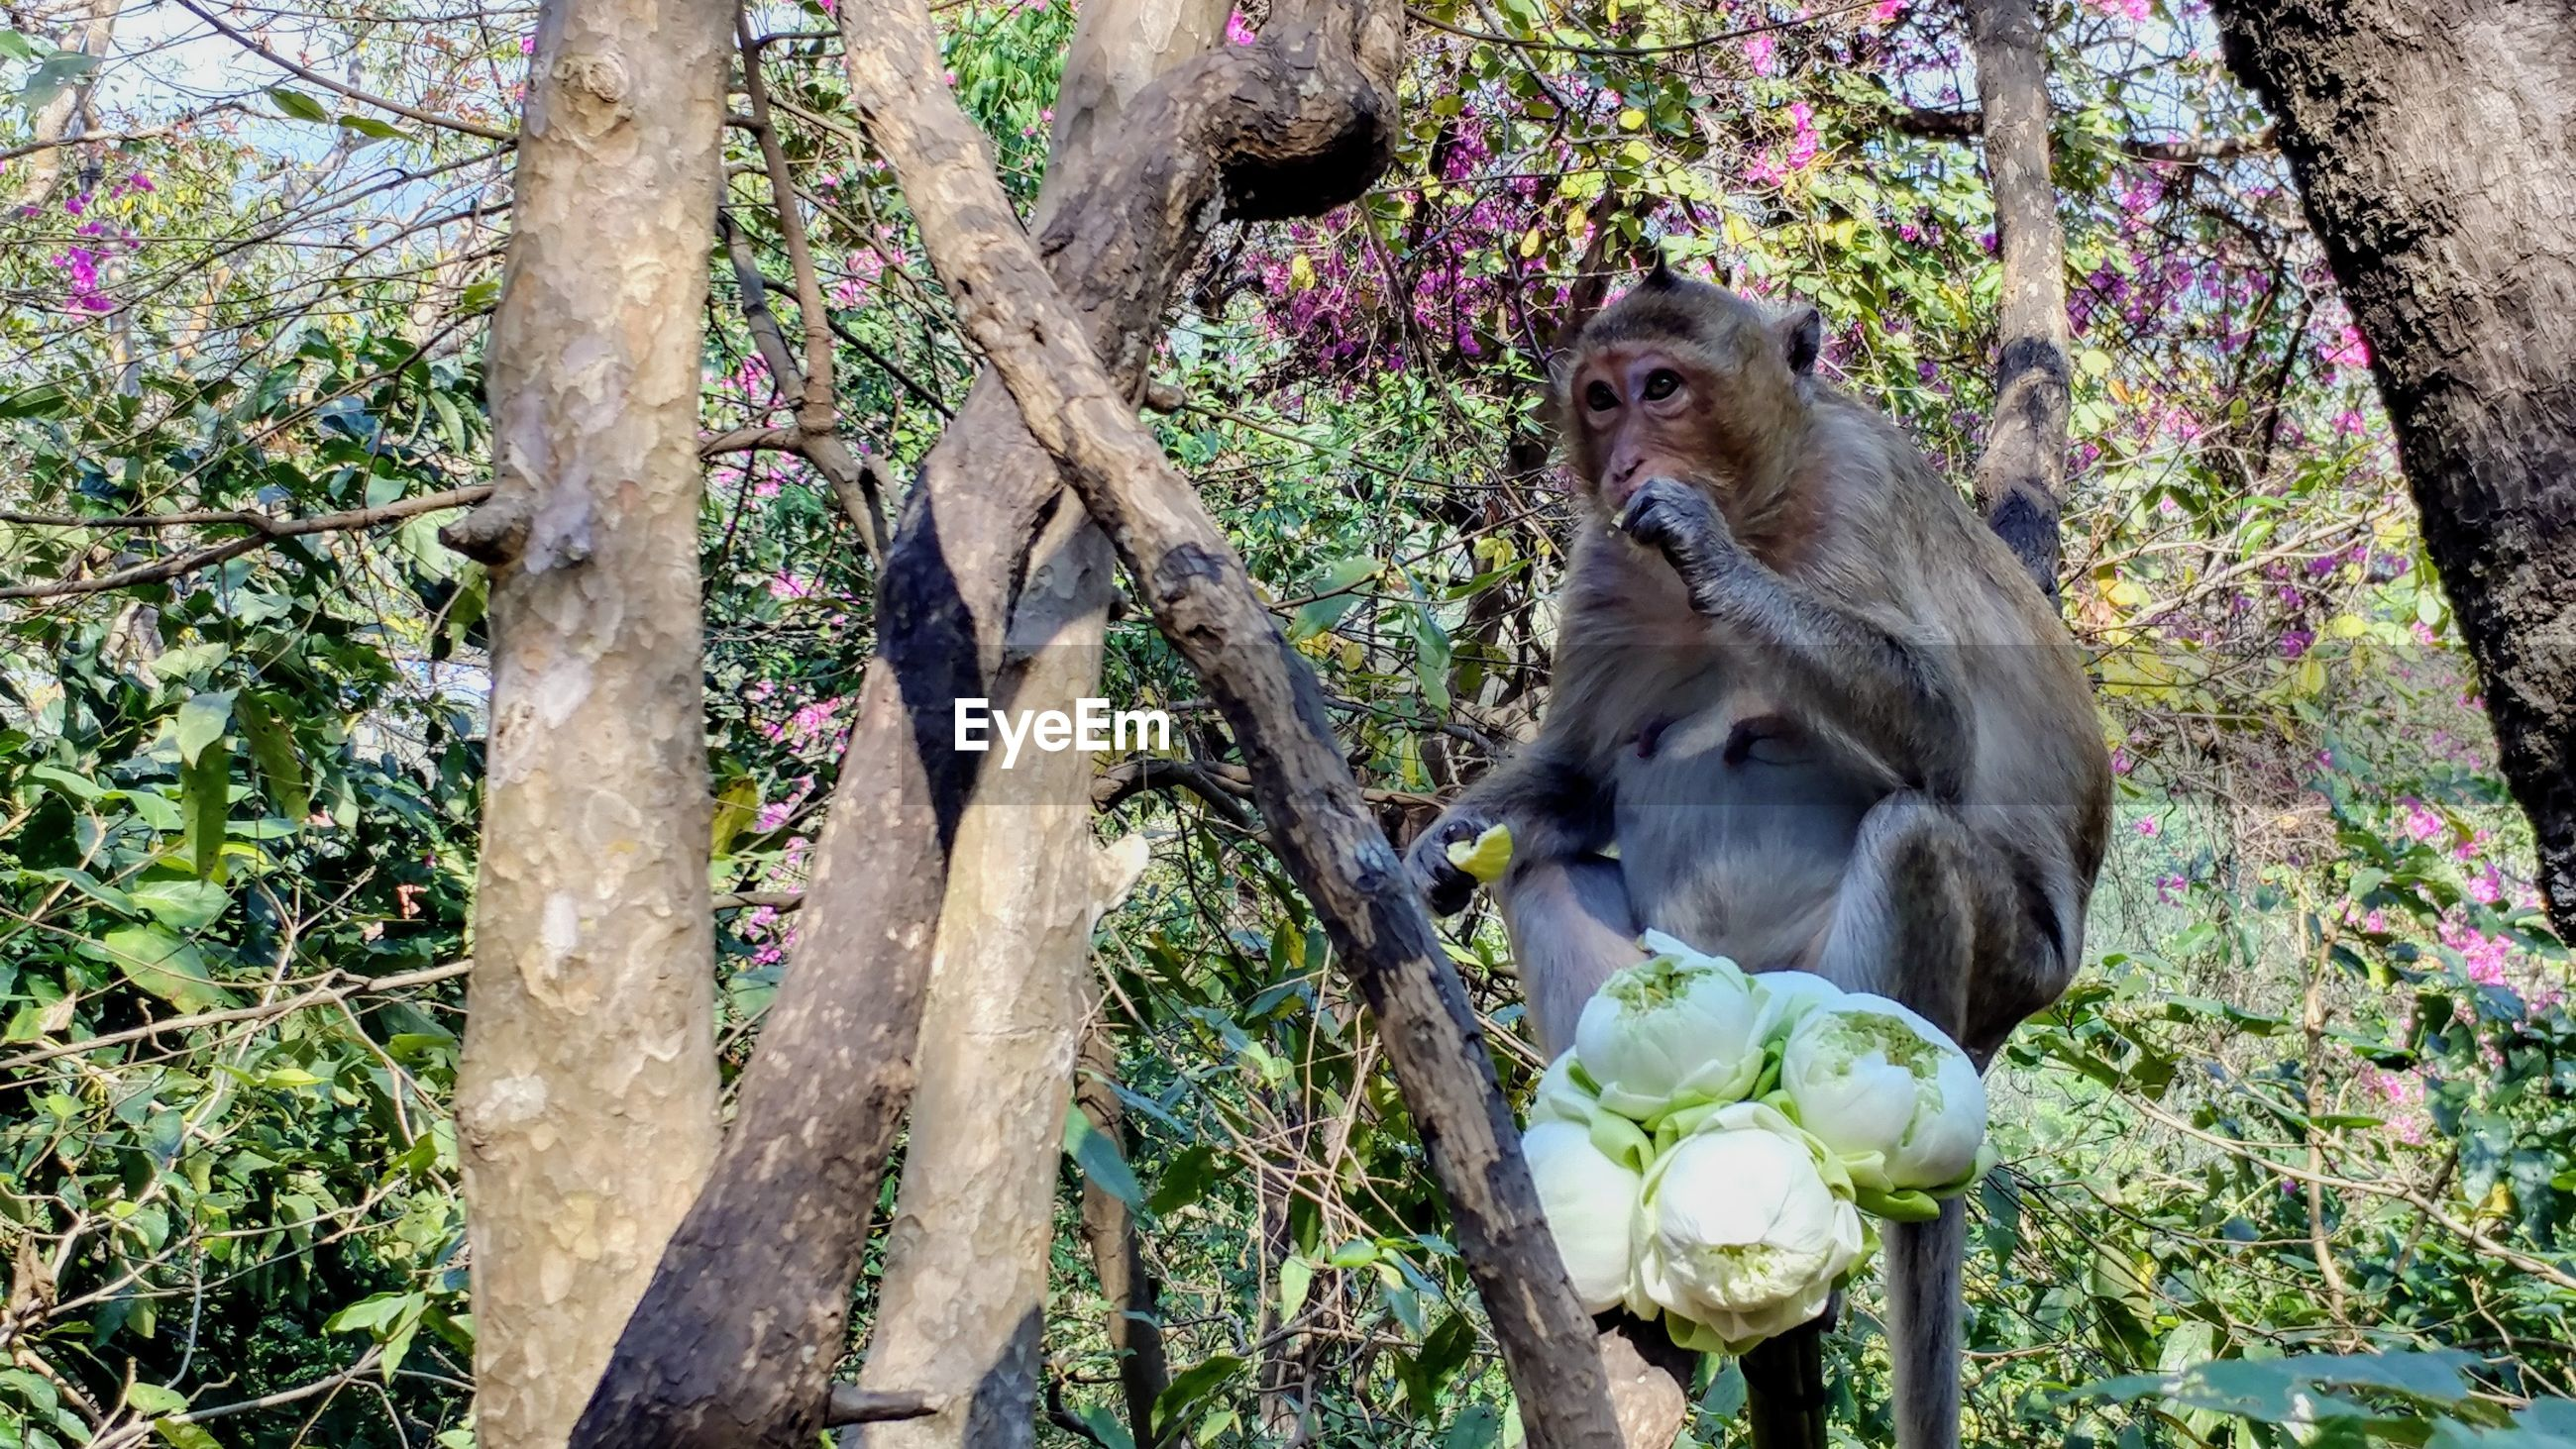 tree, animals in the wild, animal wildlife, animal themes, no people, day, mammal, tree trunk, branch, outdoors, monkey, nature, one animal, growth, sitting, beauty in nature, baboon